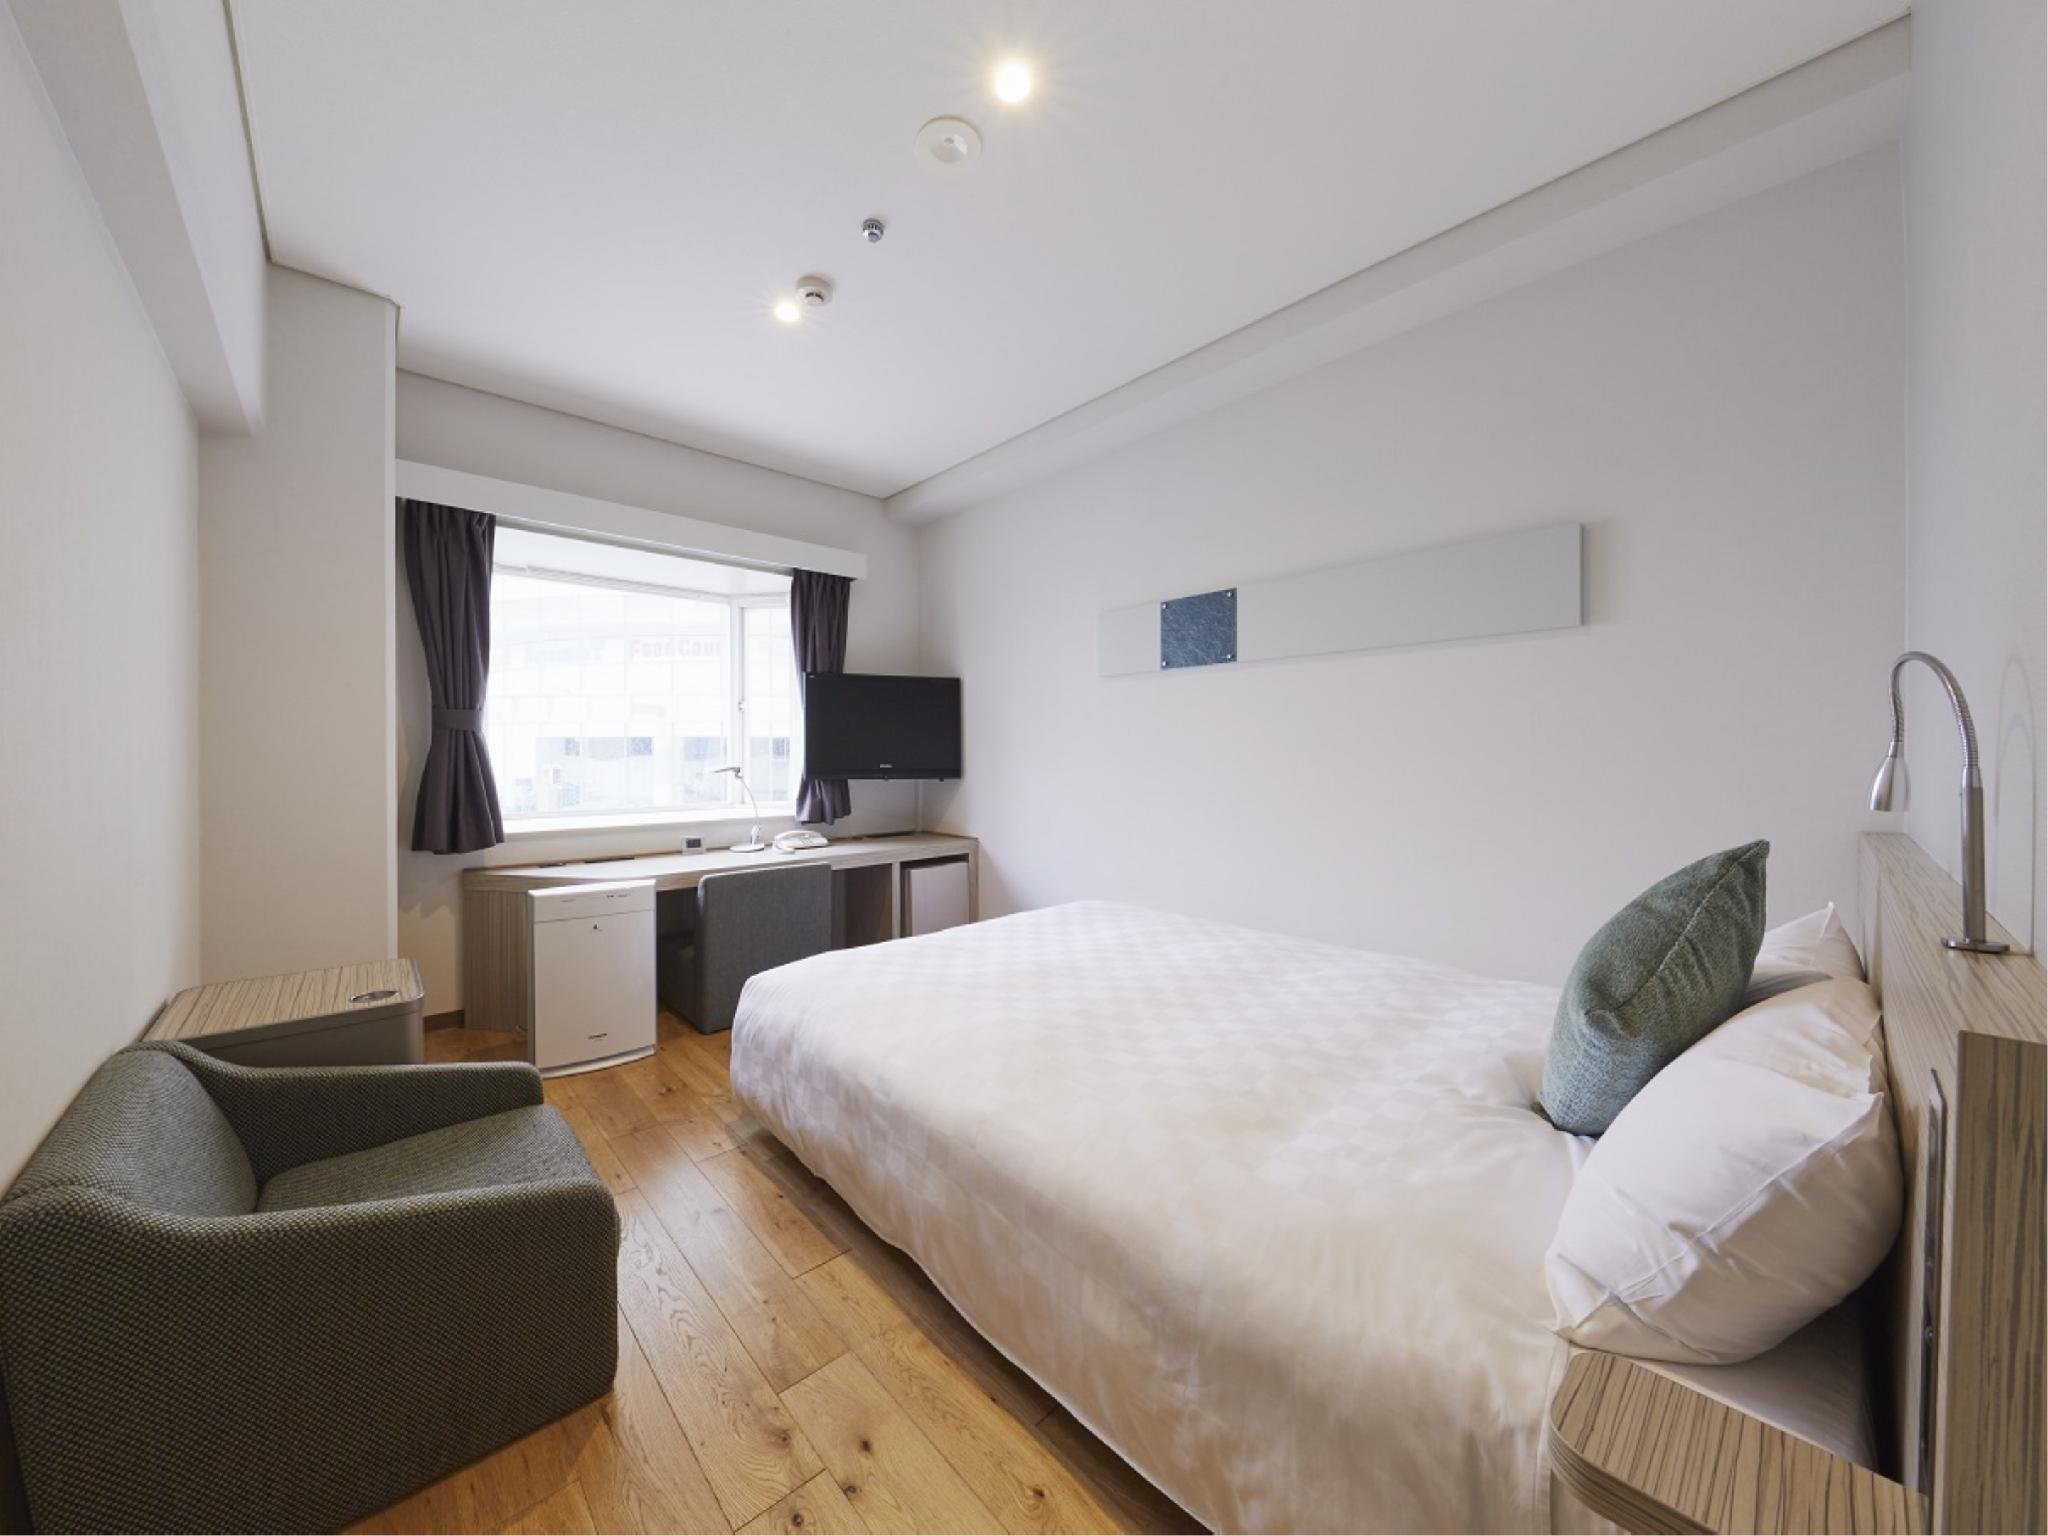 Semi Double Room with Wooden Flooring